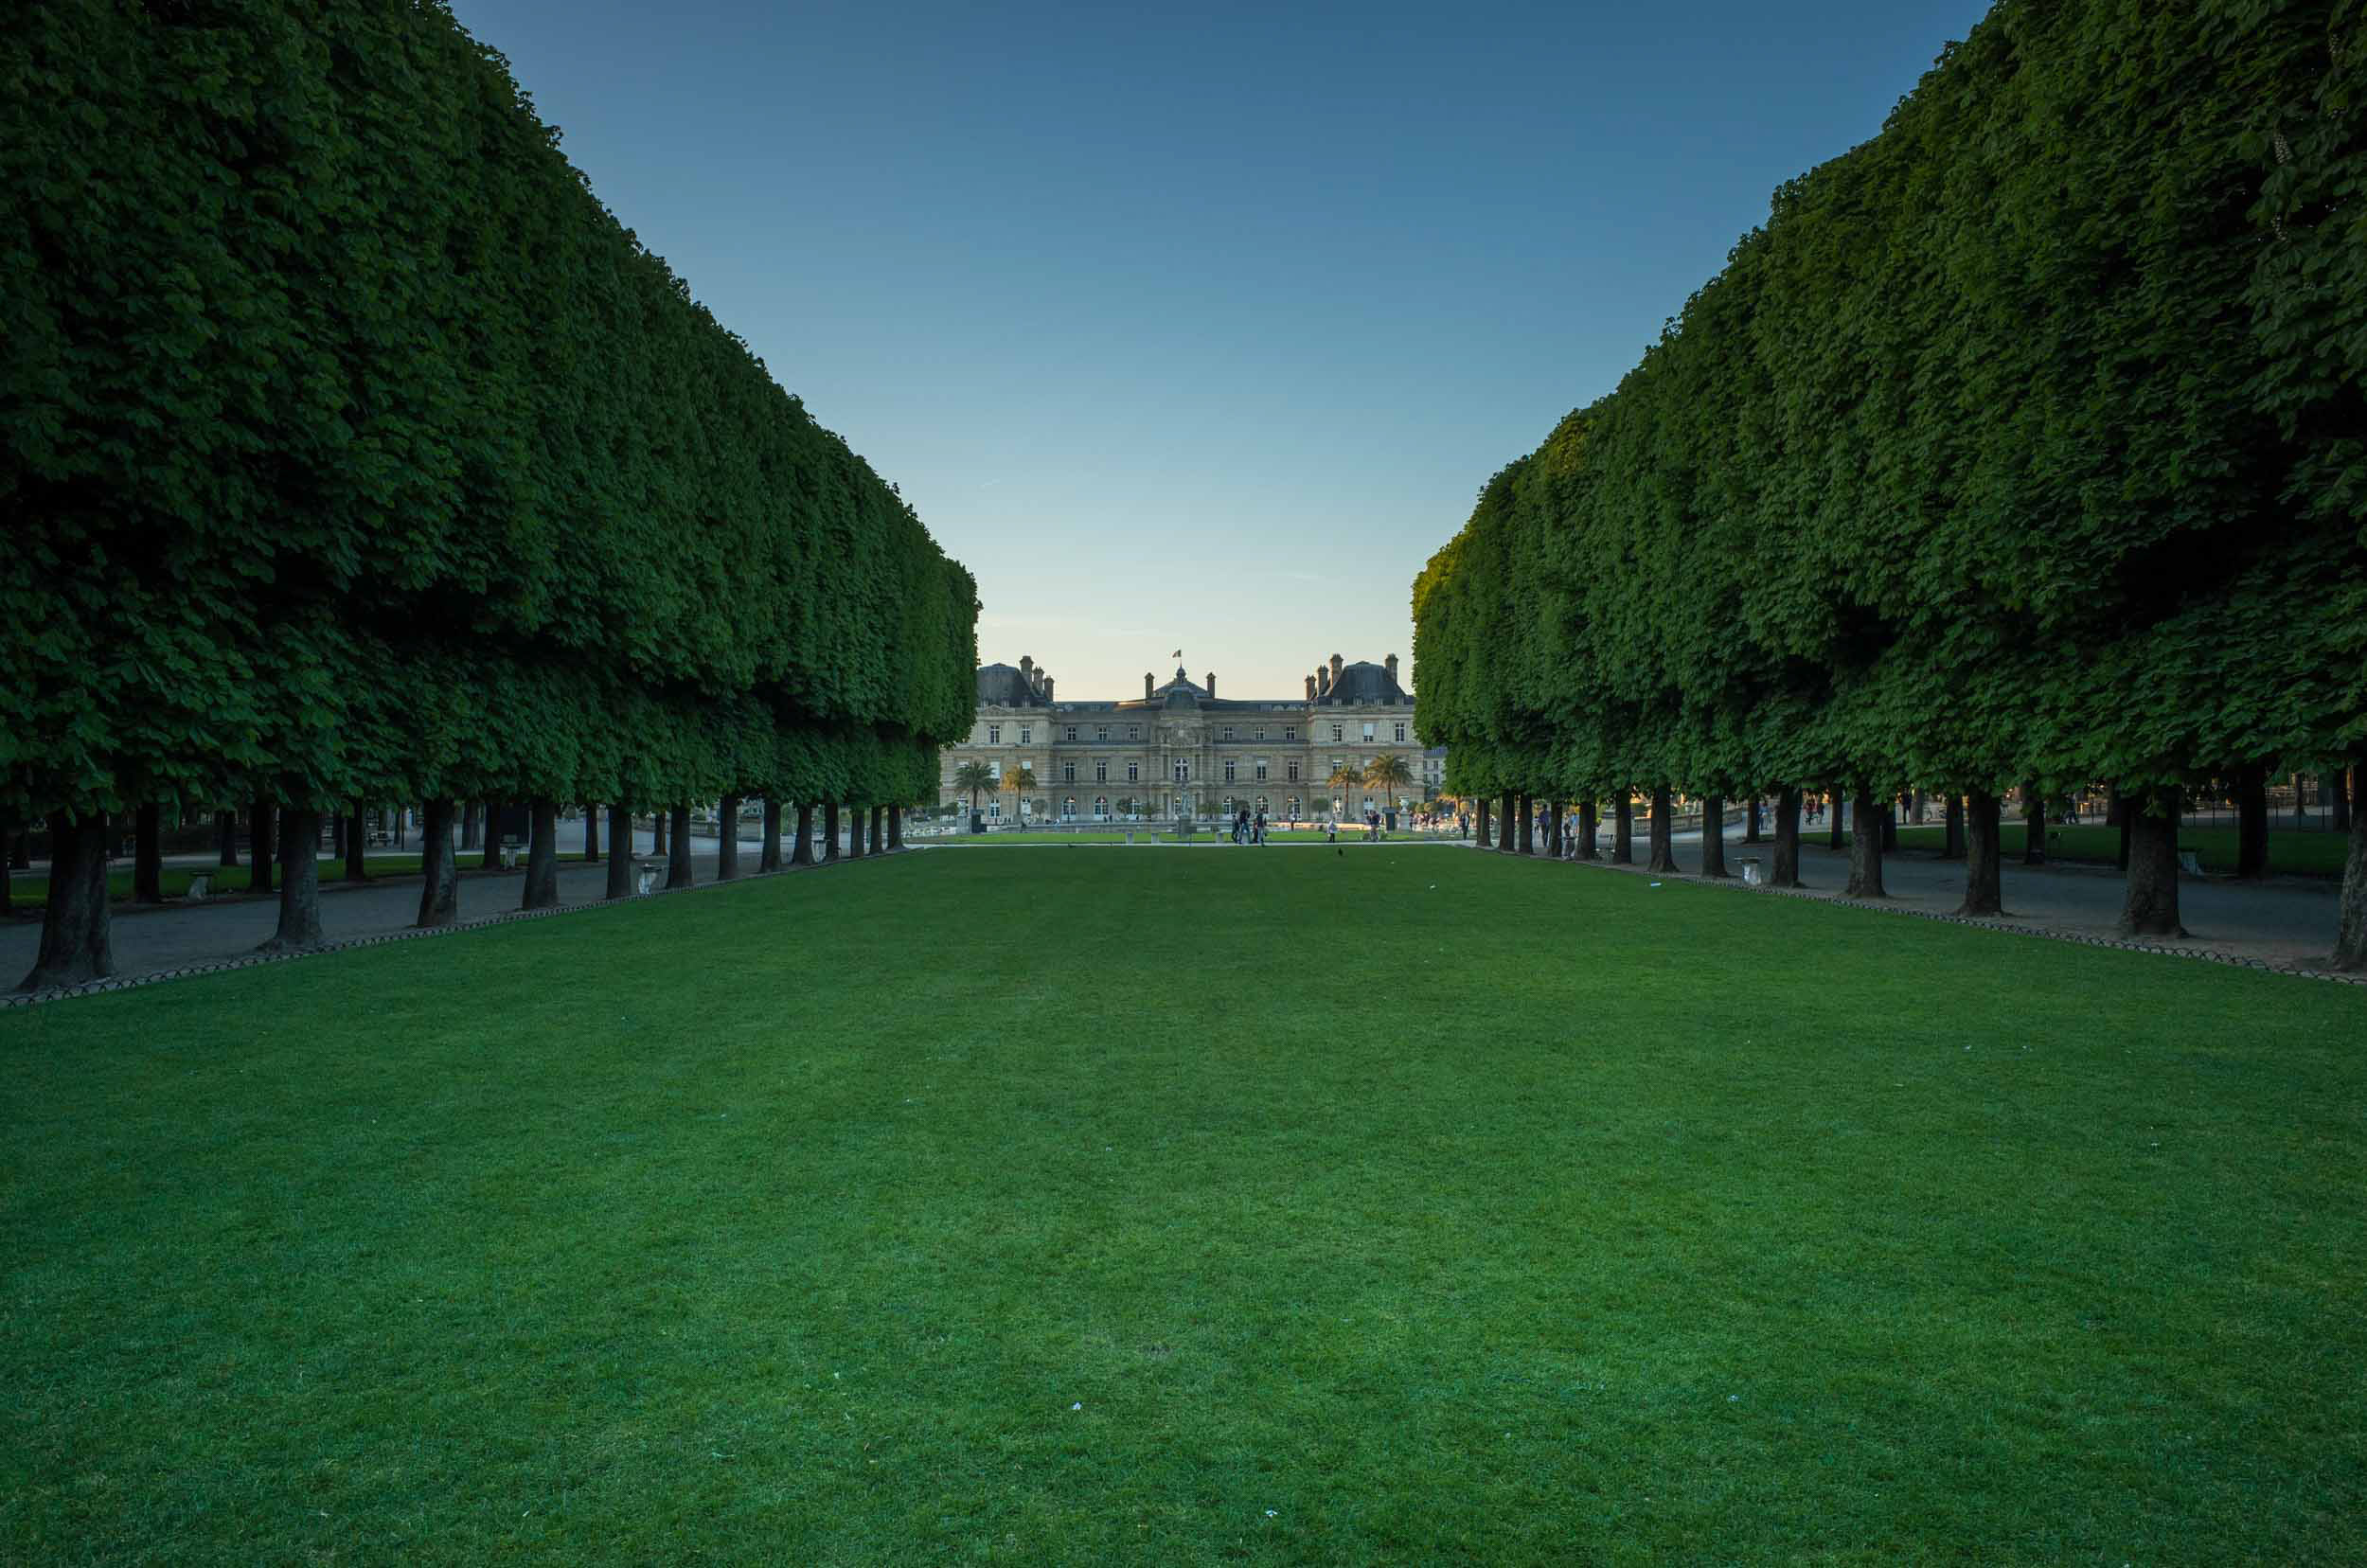 Revisiting the Jardin du Luxembourg